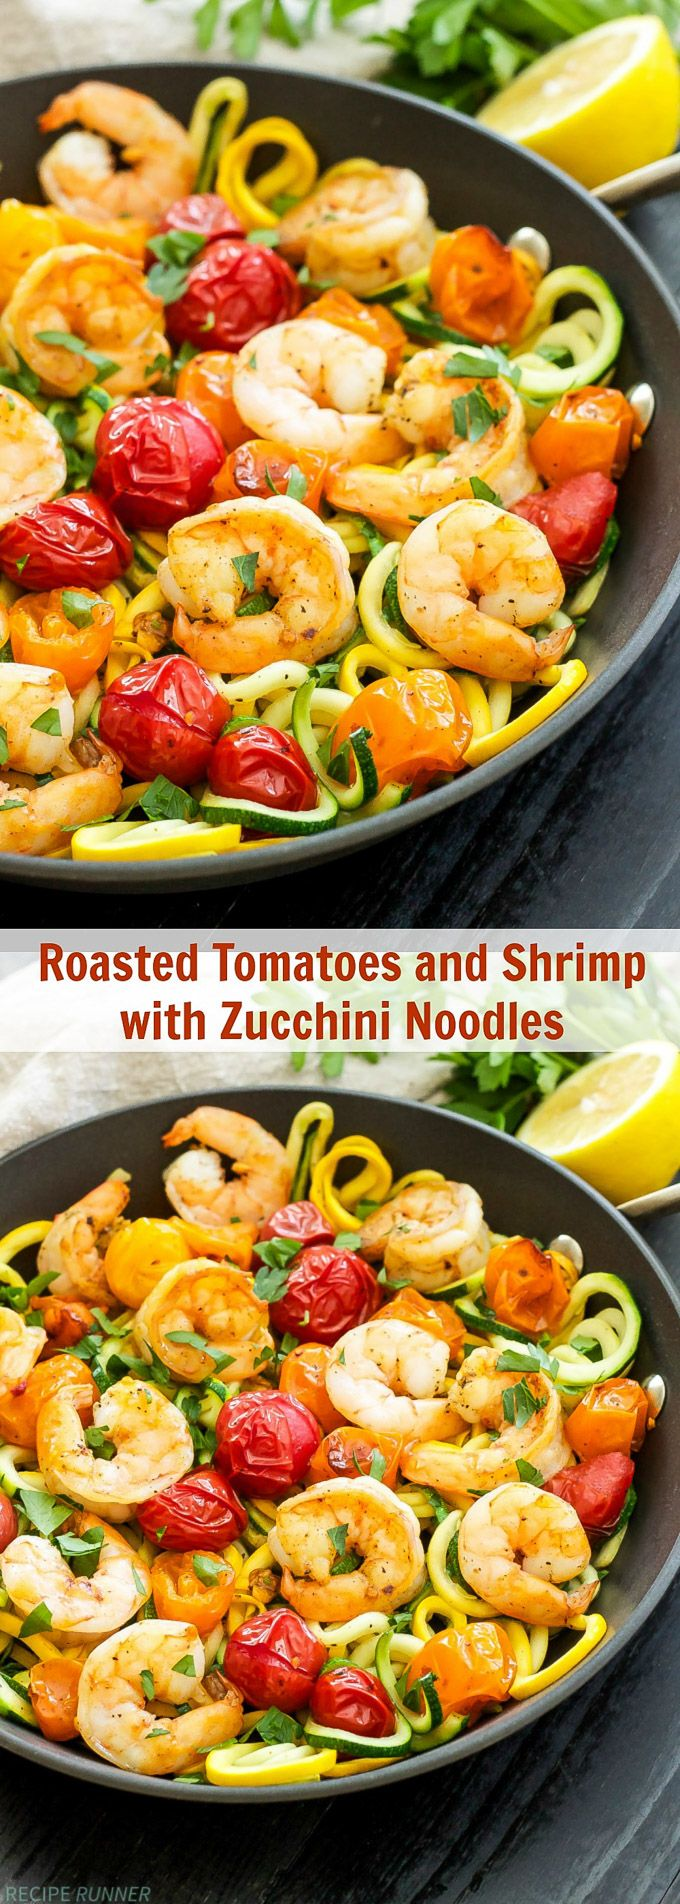 Roasted Tomatoes with Shrimp and Zucchini Noodles | One of my favorite, easy to make dinners! Simple ingredients, gluten-free, Paleo and Whole30 compliant!